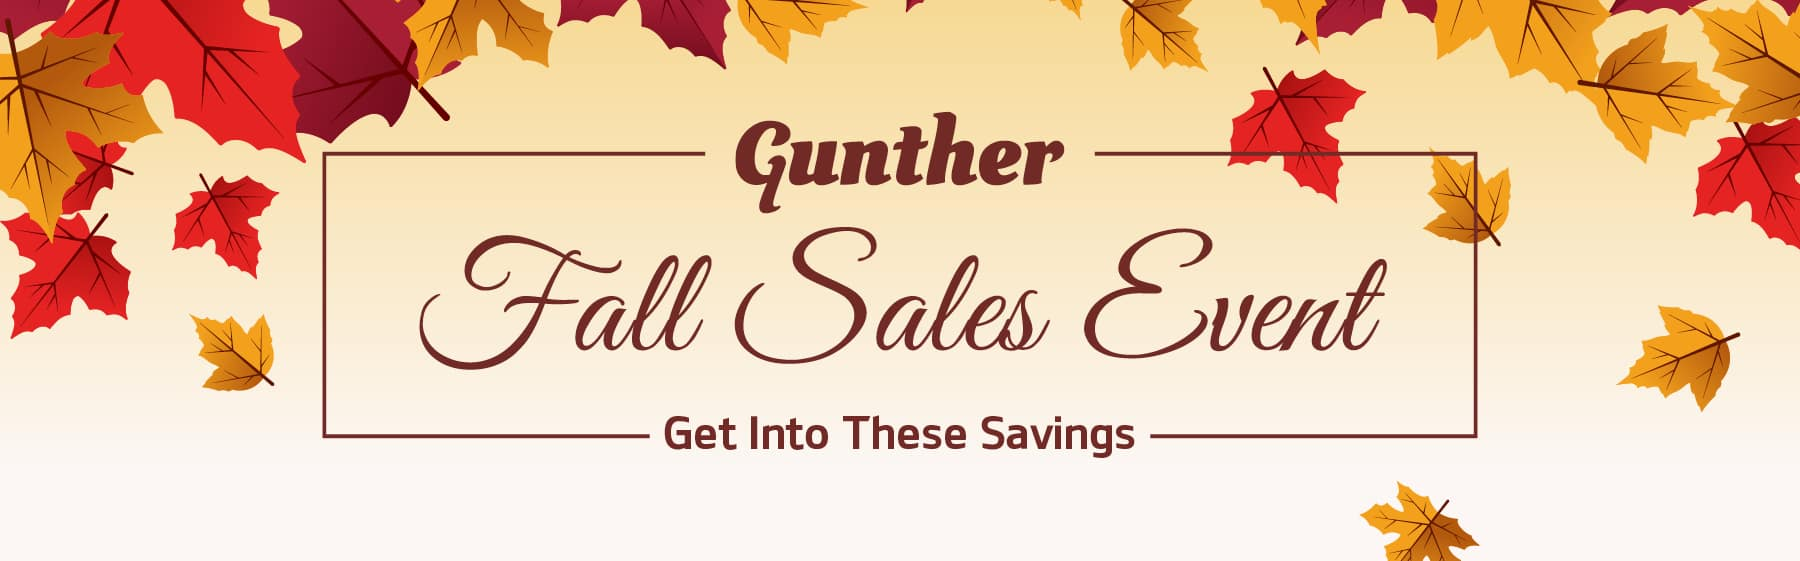 Gunther Fall Sales Event. Get into these savings!\